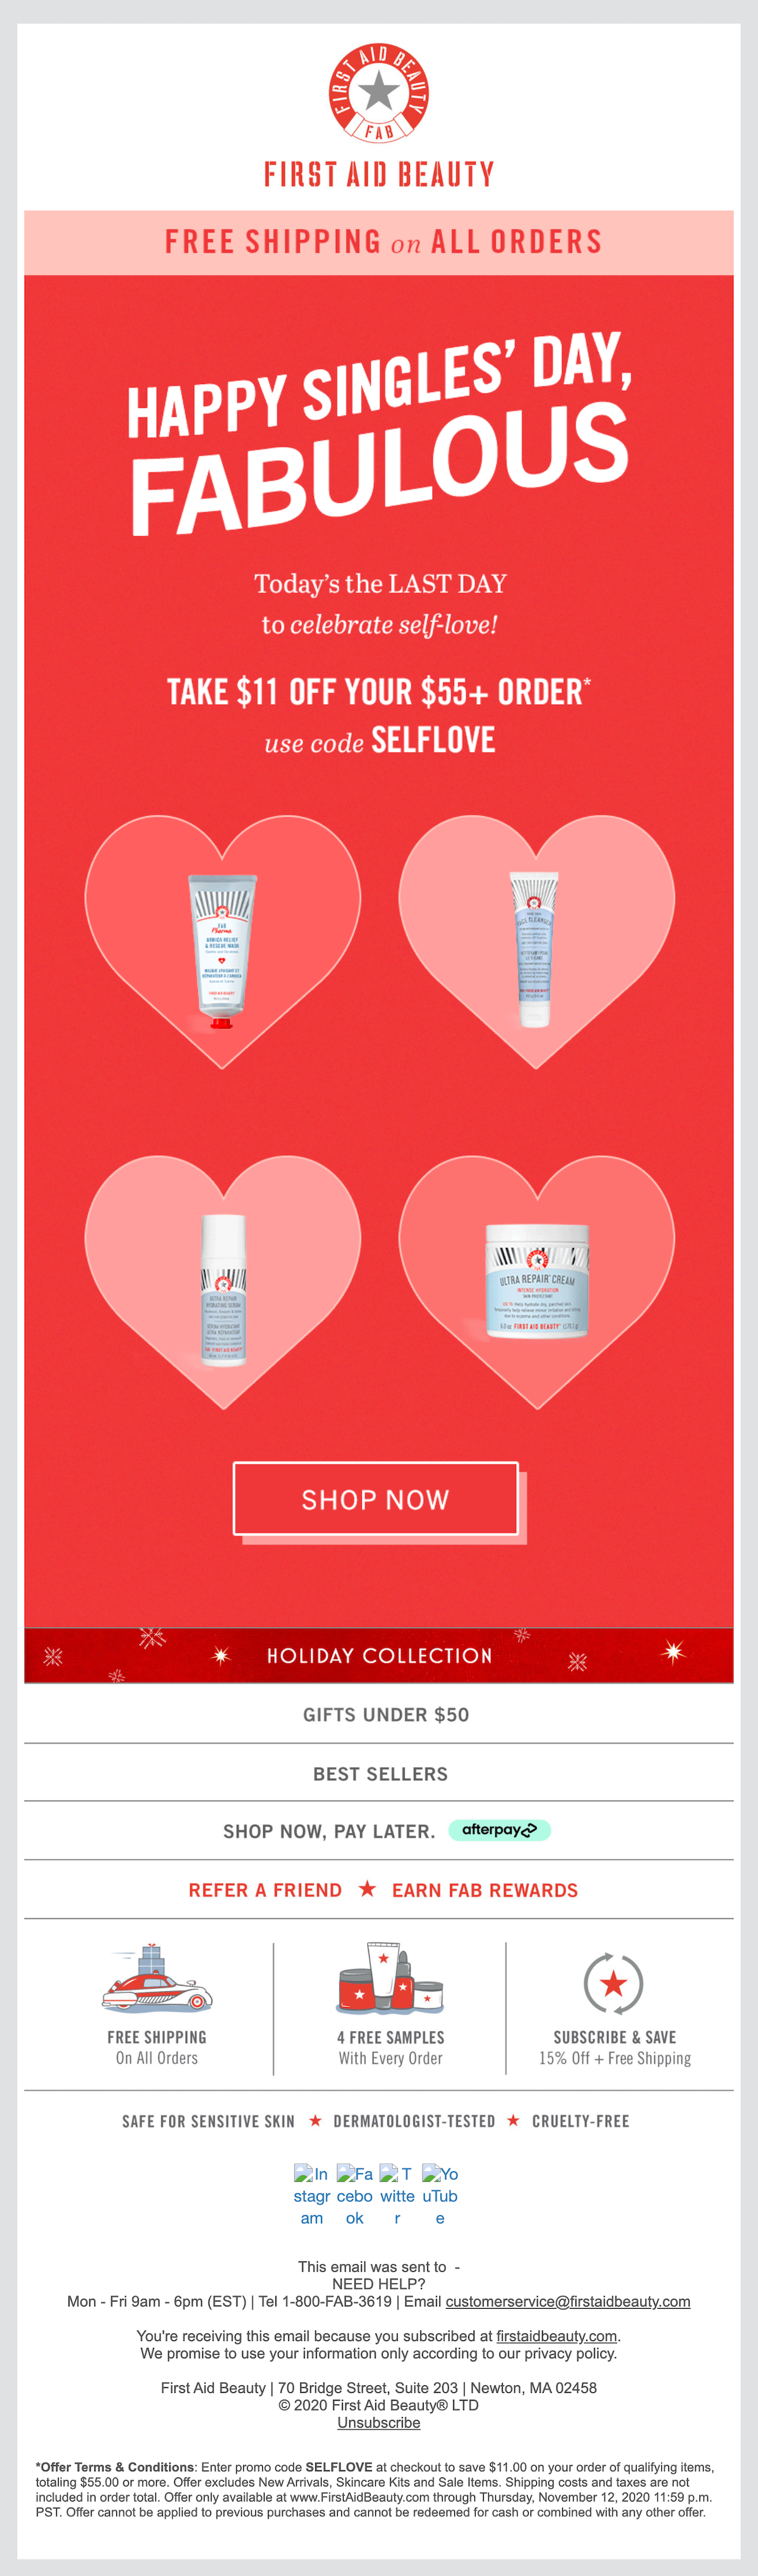 First Aid Beauty Singles' Day email